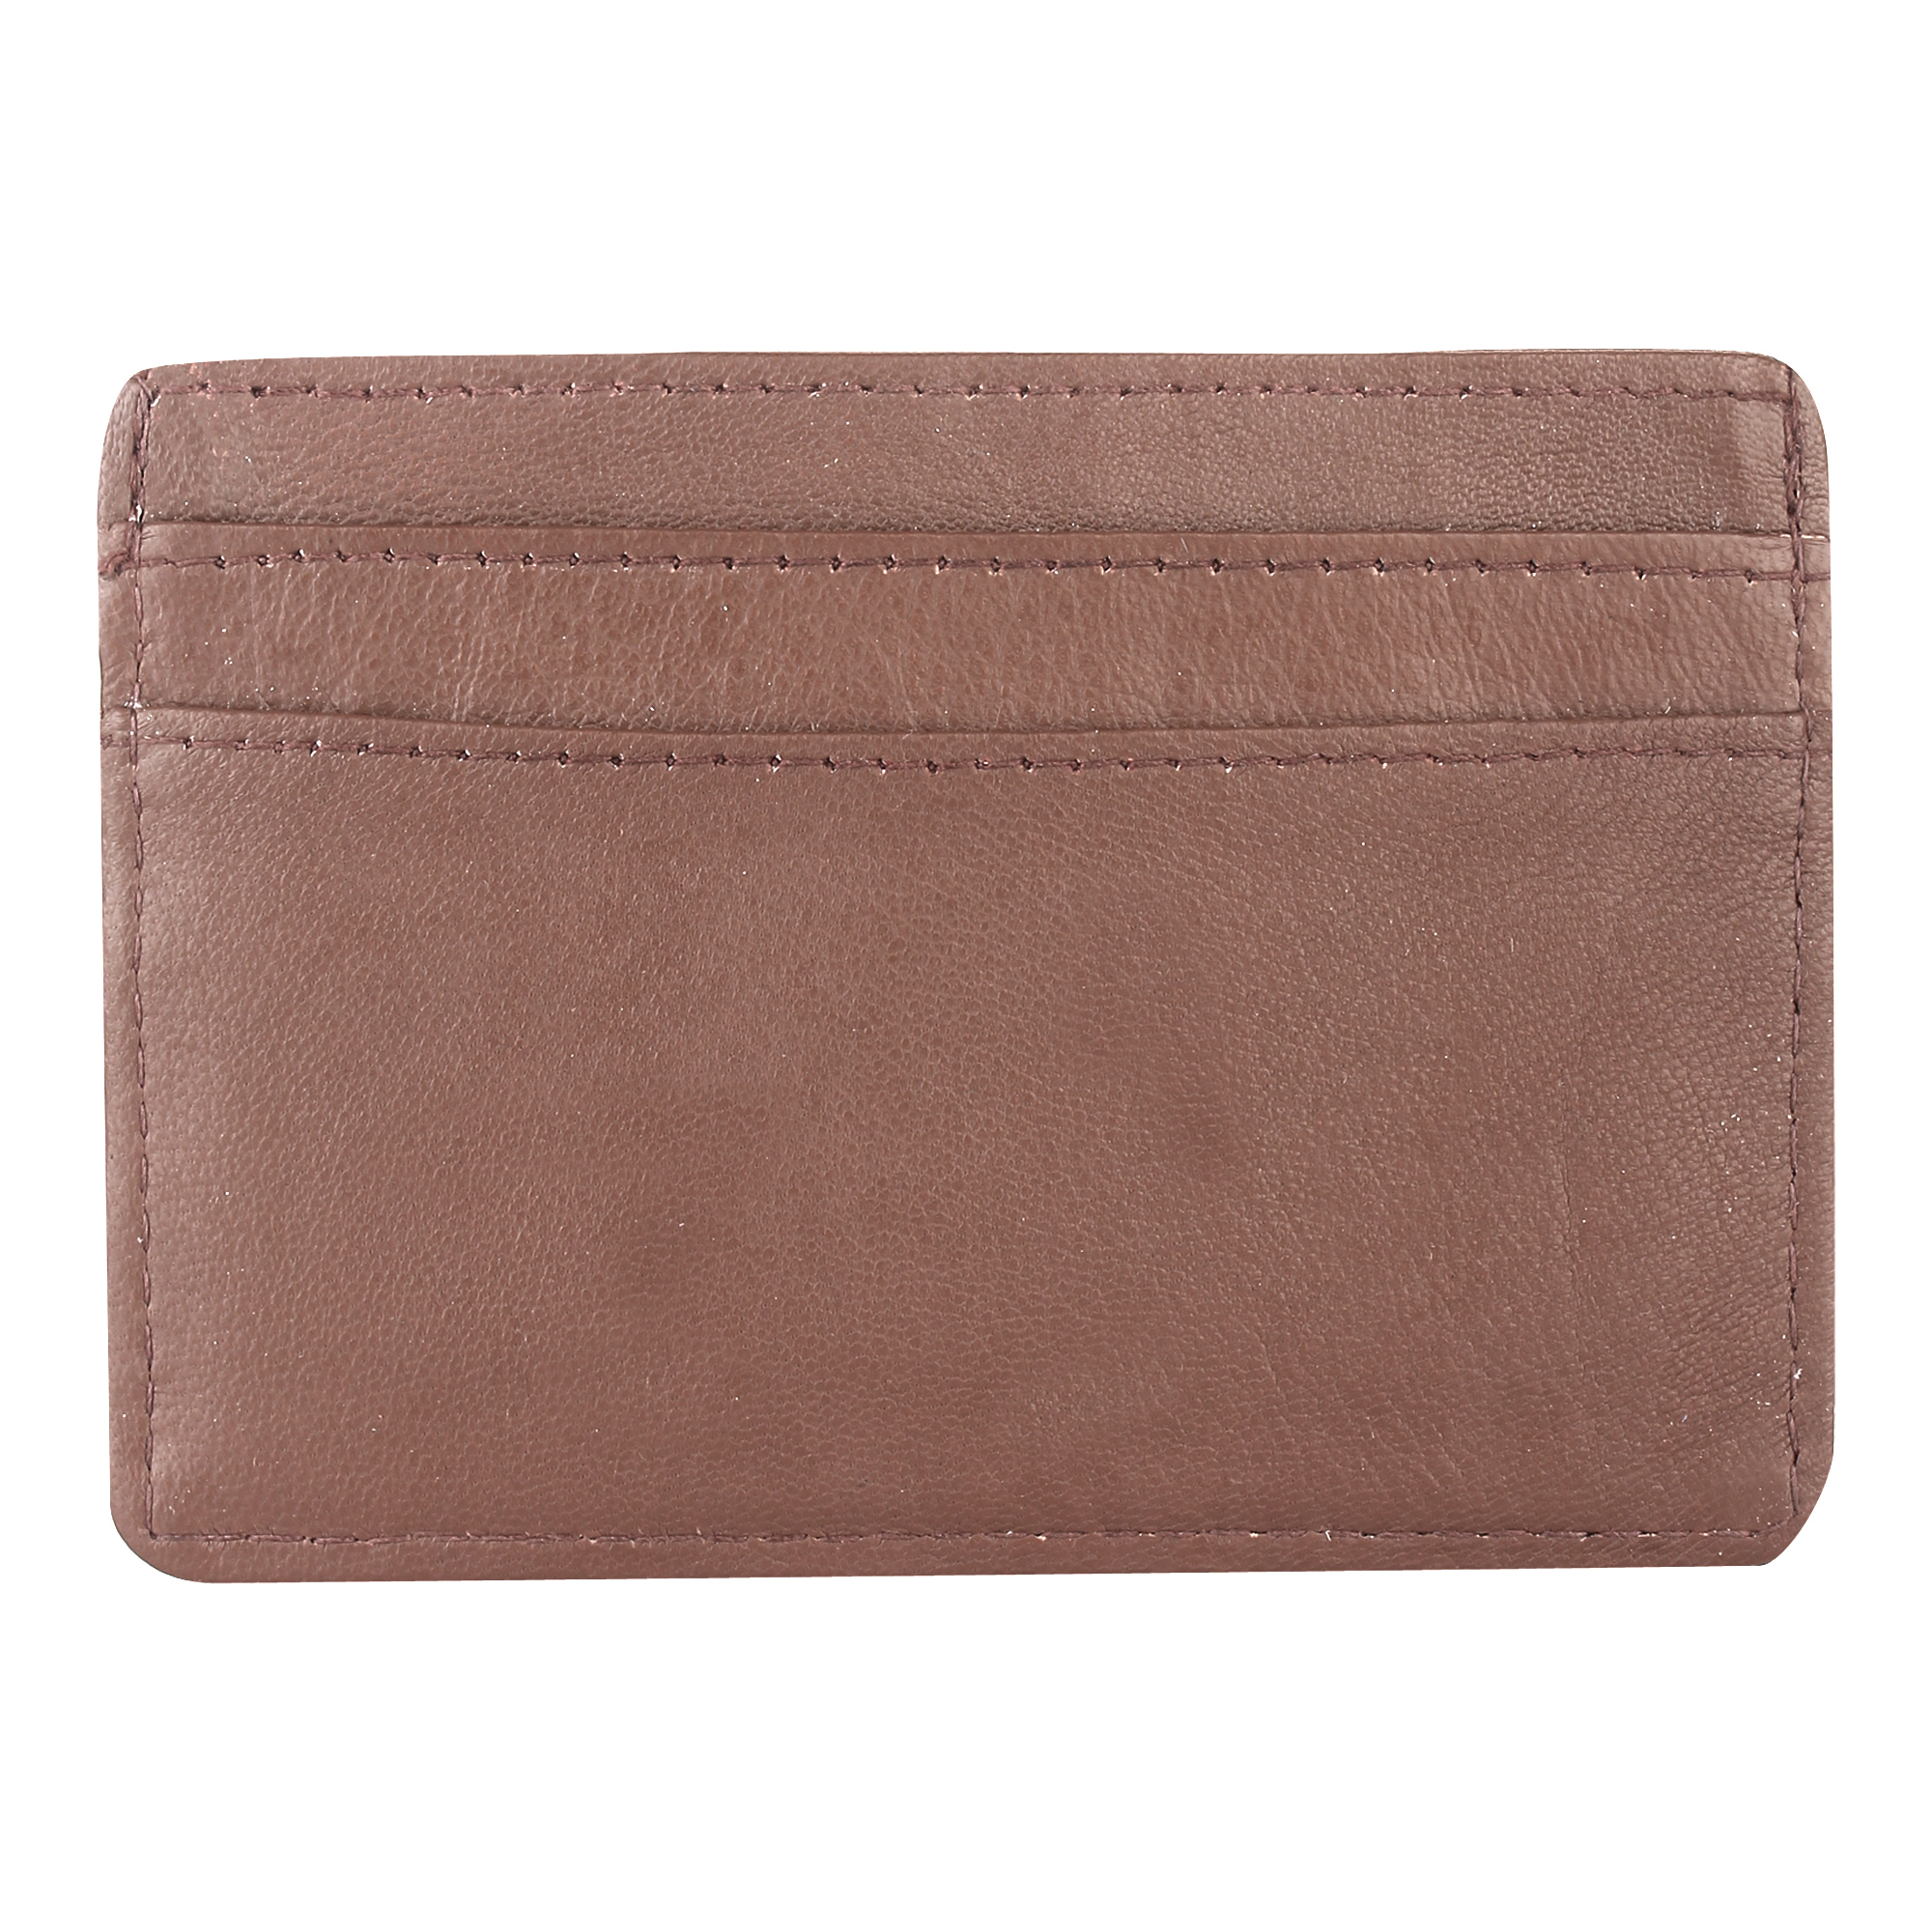 Leather Card Holder Wallet Manufacturers In Bangalore, Card Holder Wallet Suppliers In Bangalore, Card Holder Wallet Wholesalers In Bangalore, Card Holder Wallet Traders In Bangalore